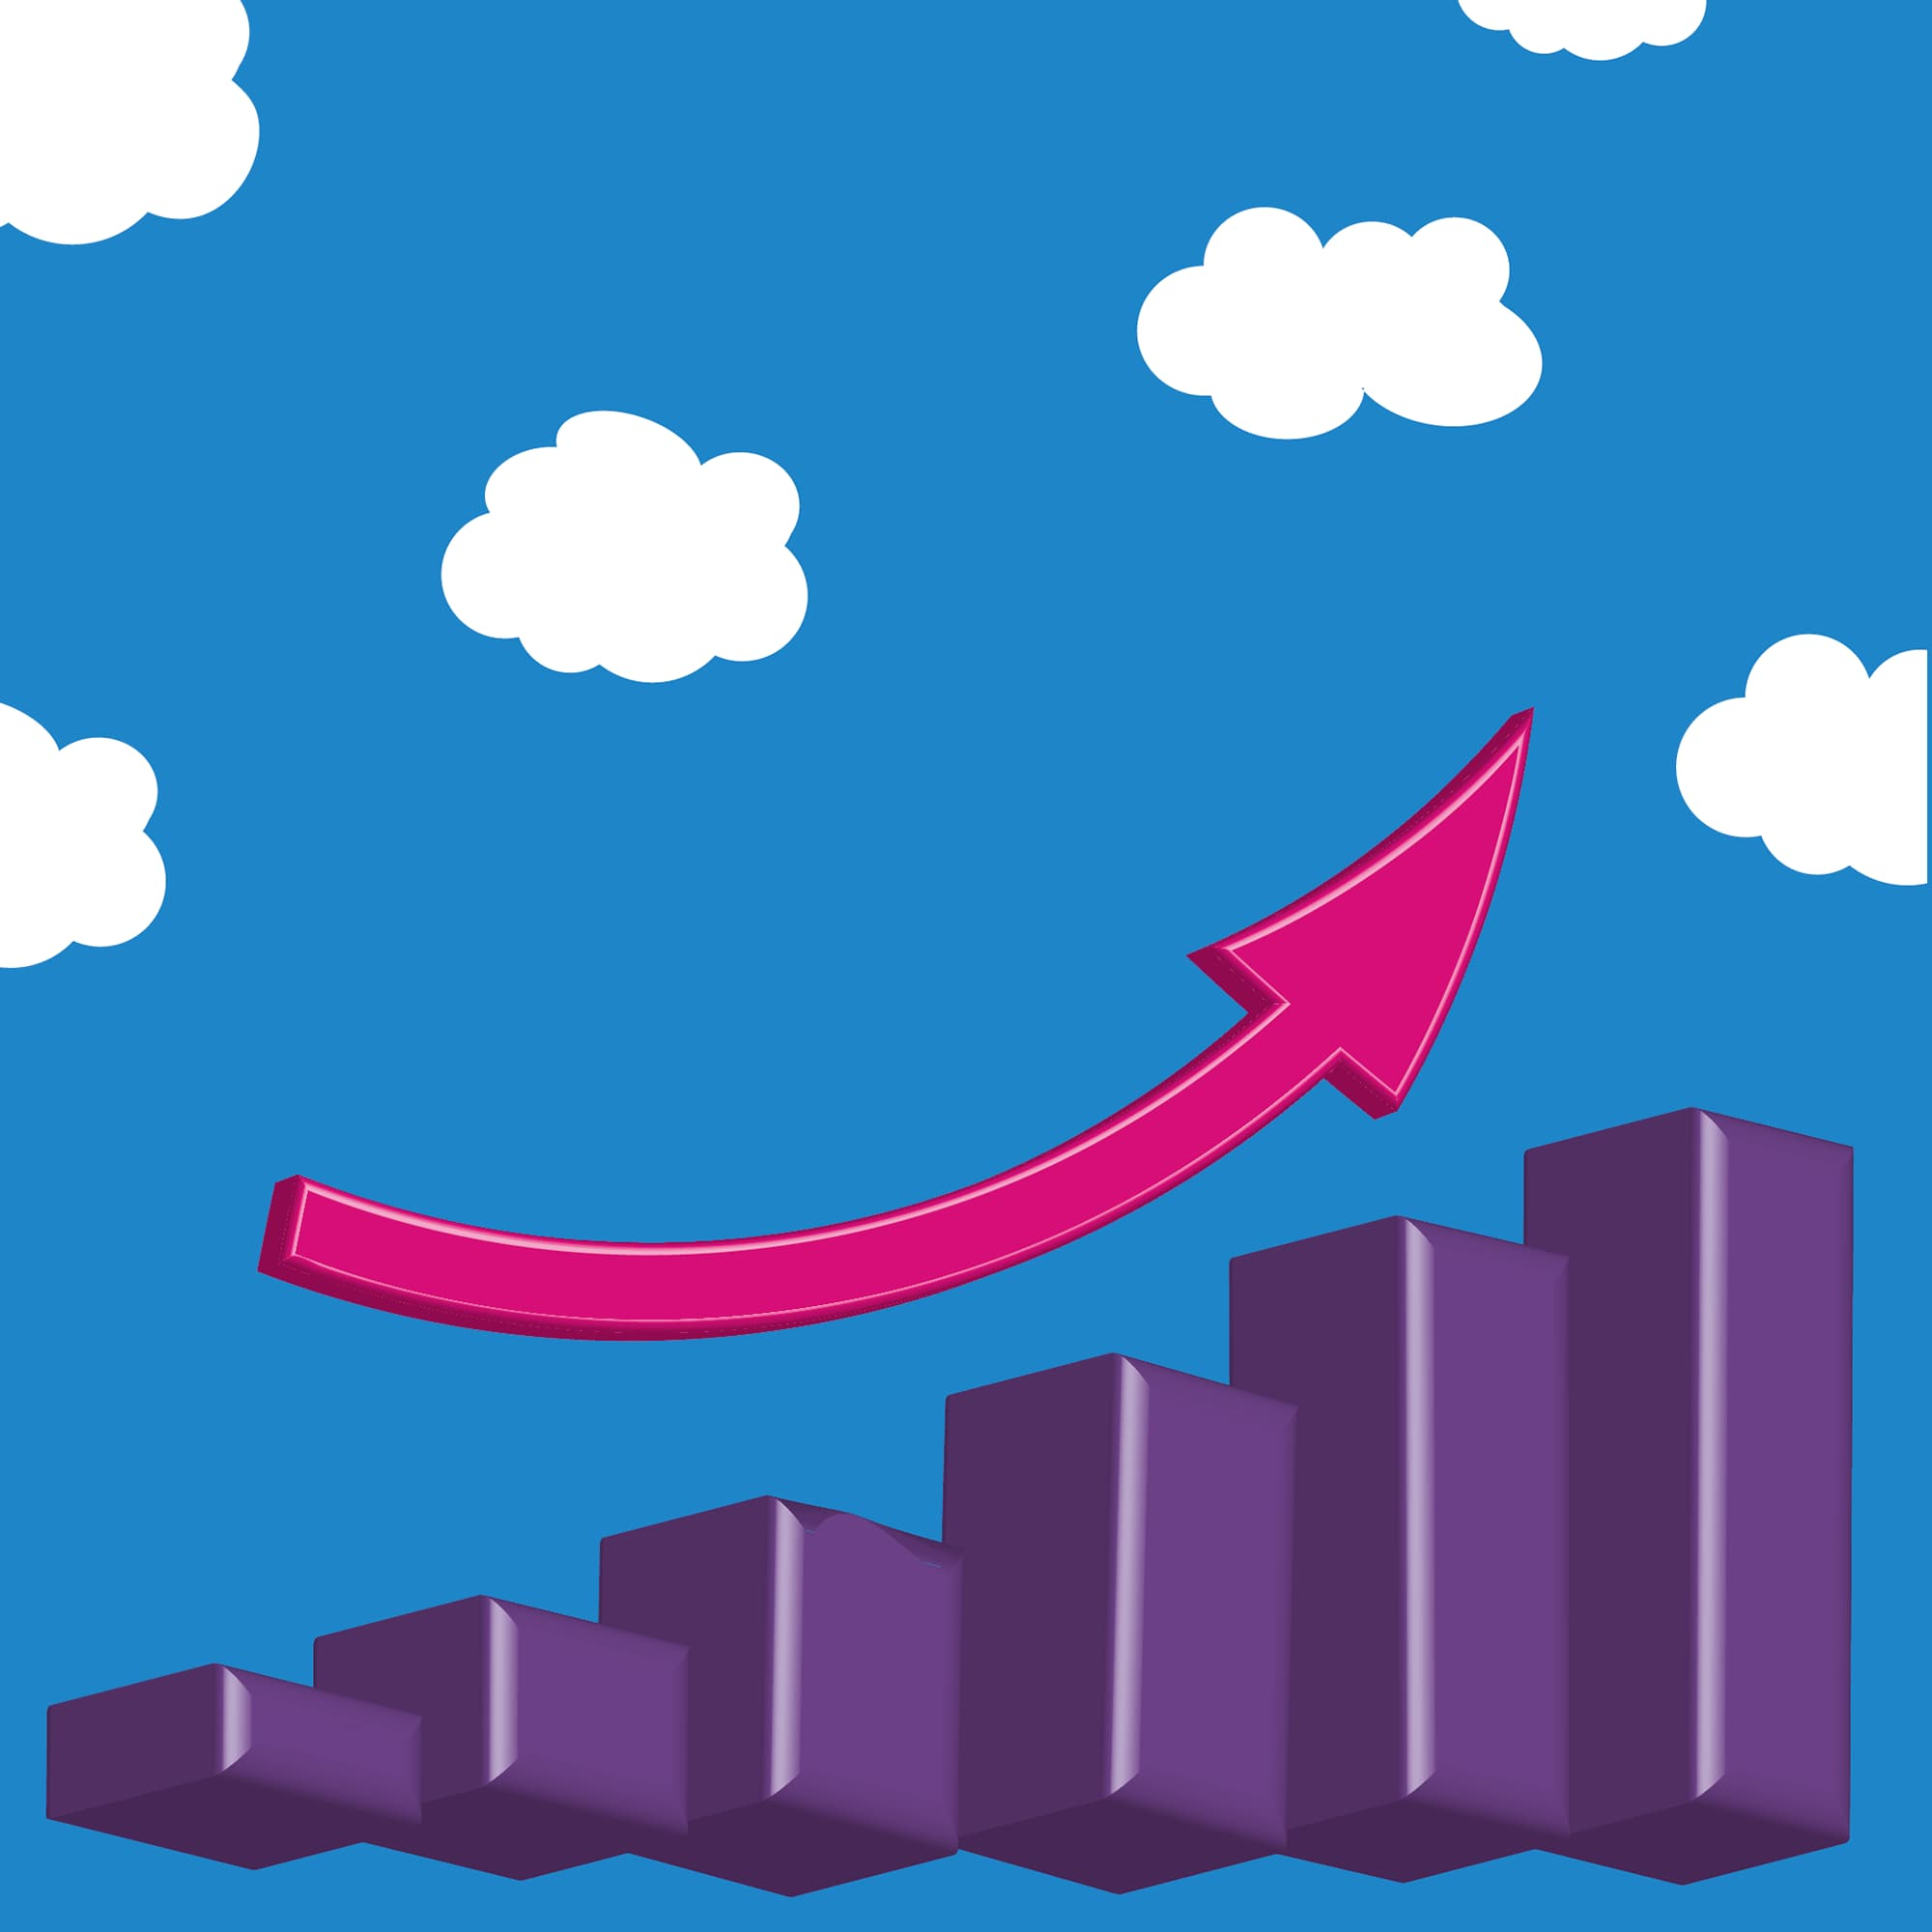 pink upward arrow pointing to top of rising purple diagram square.jpg